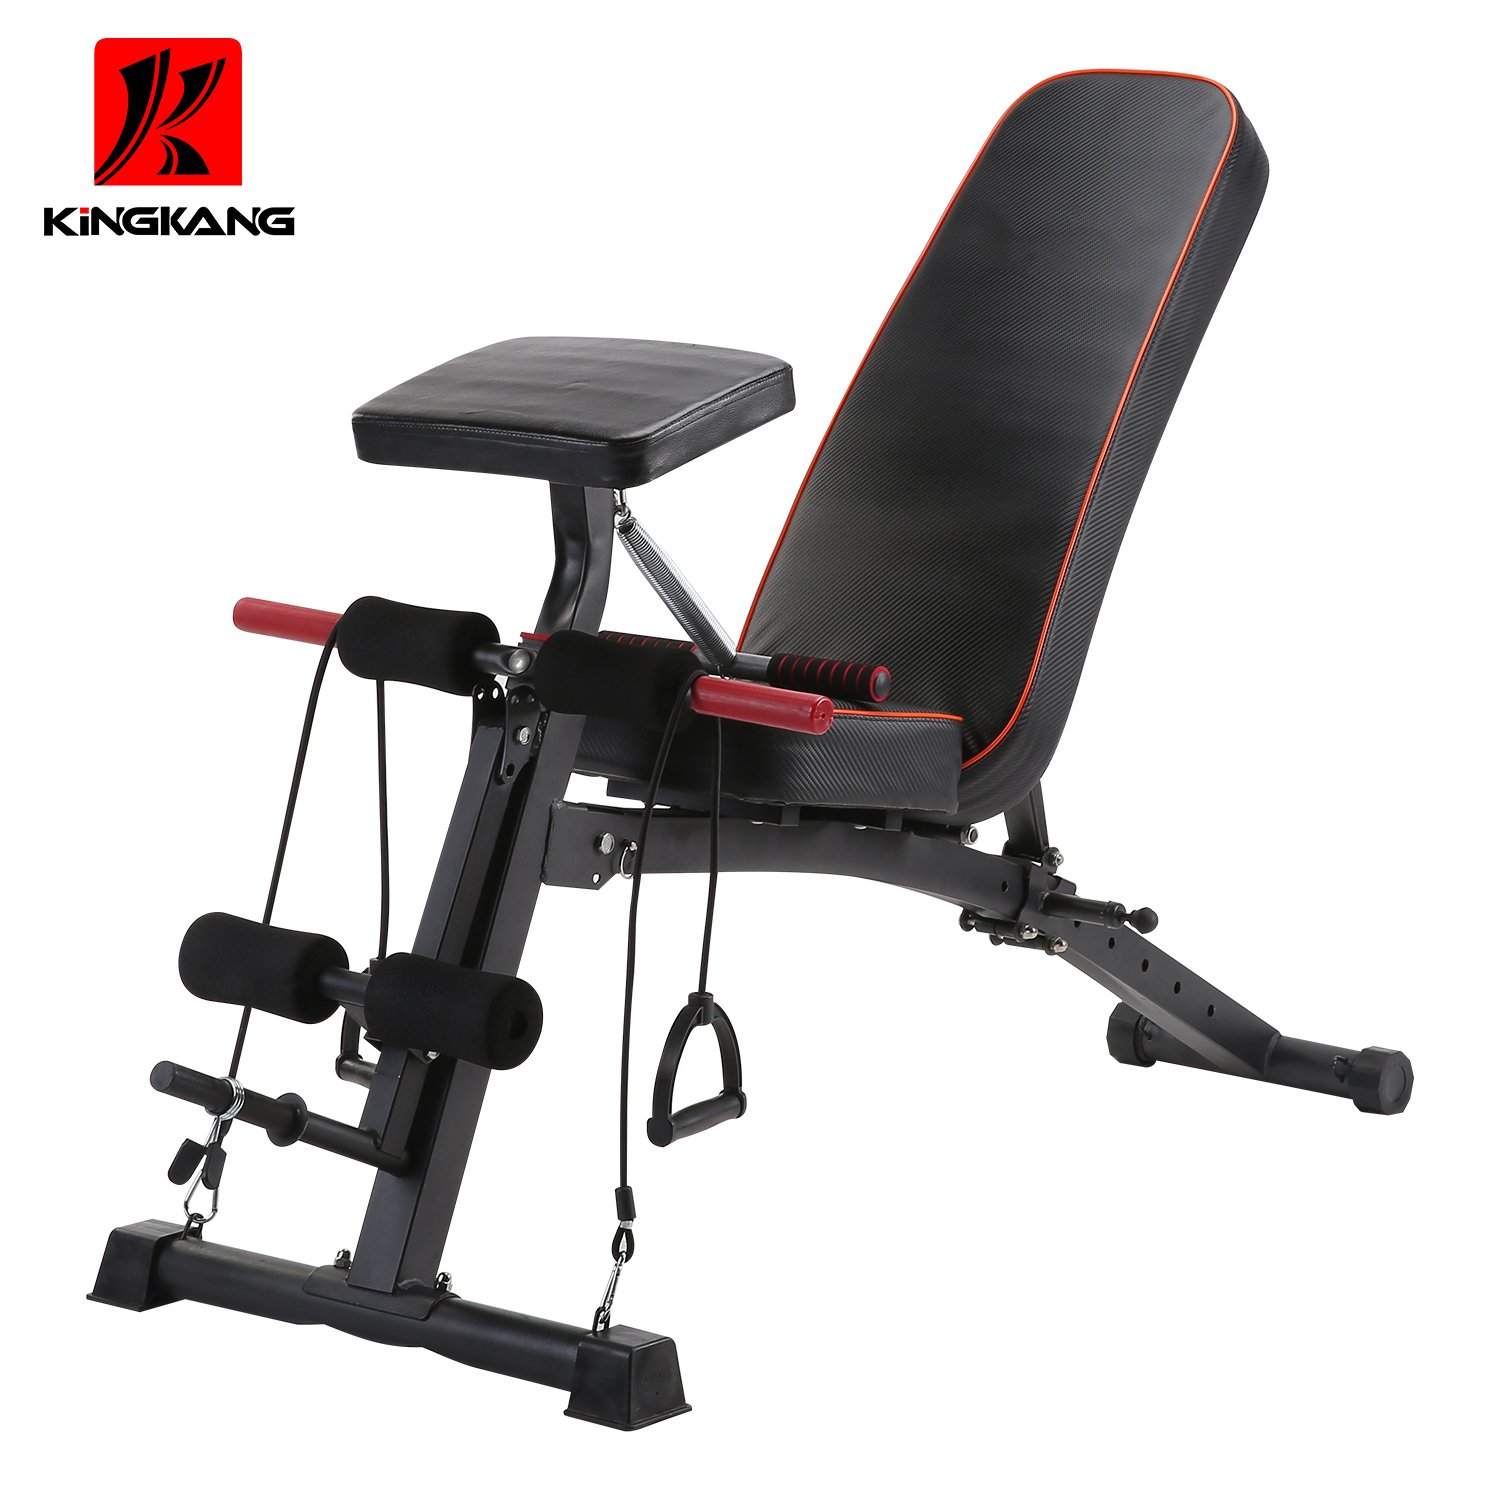 KiNGKANG K Adjustable Utility Bench sit Up Bench Foldable Fitness Training Weight Bench